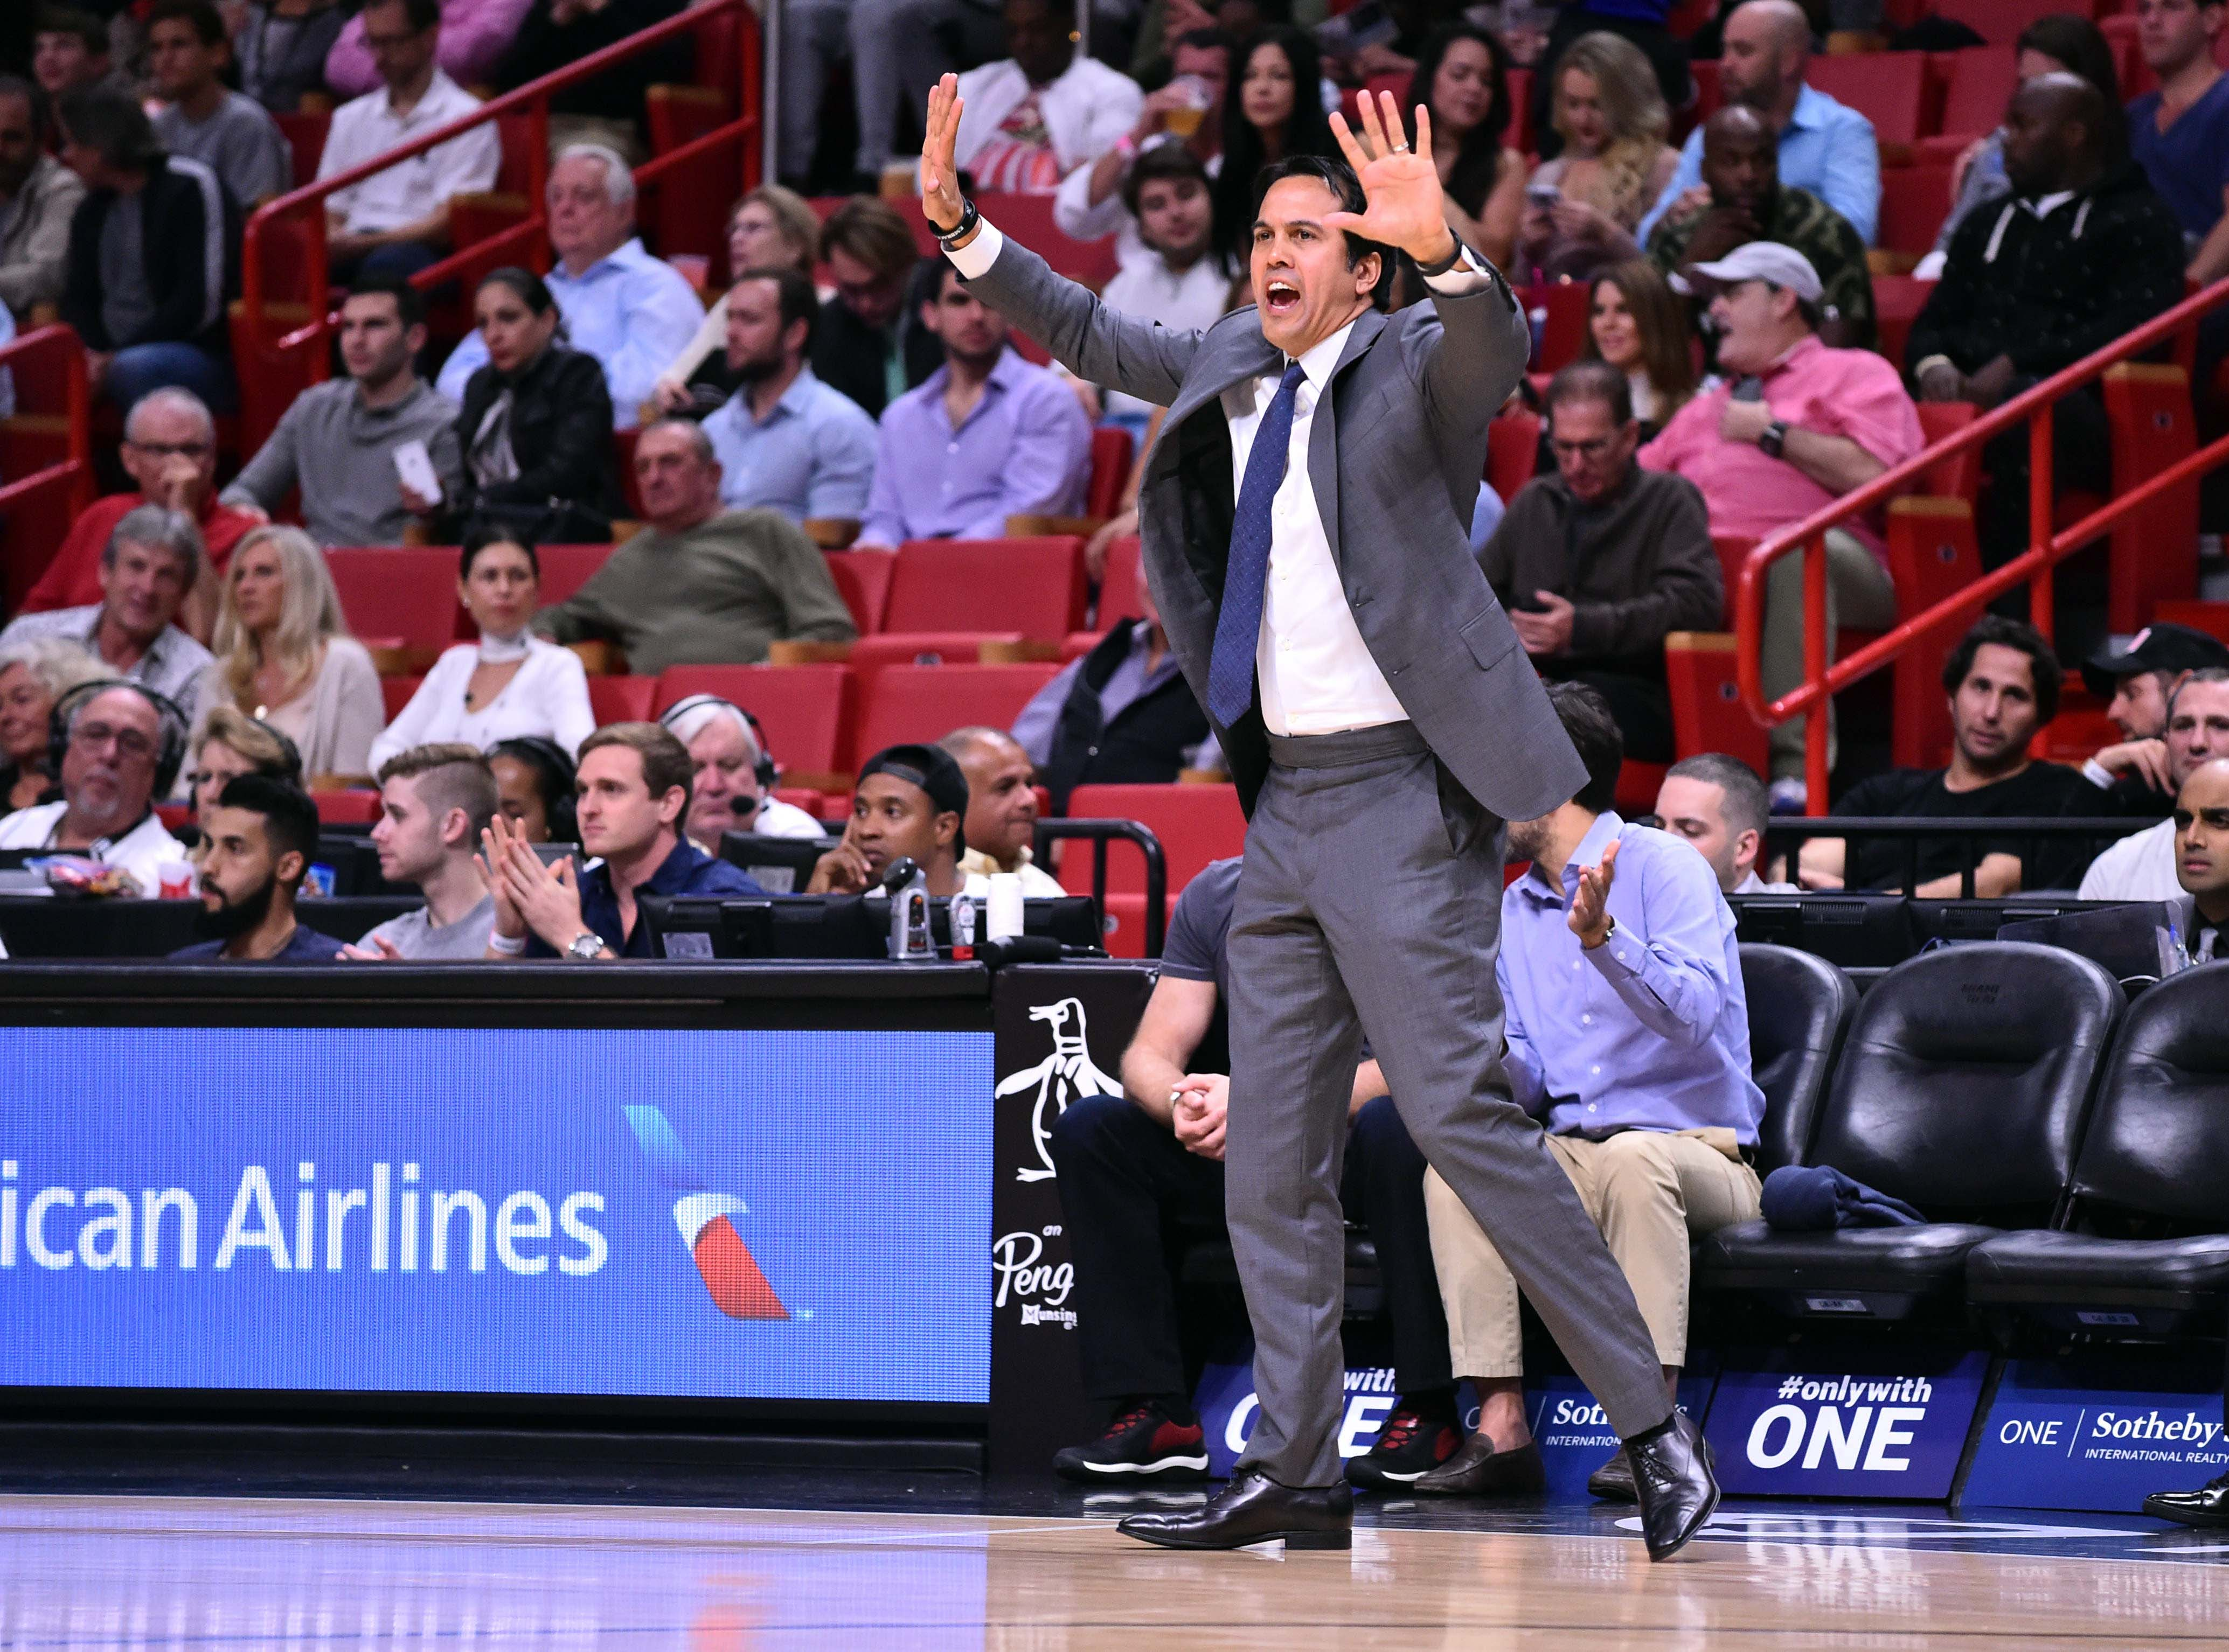 Feb 1, 2017; Miami, FL, USA; Miami Heat head coach Erik Spoelstra calls out a play during the first half of go game action against the Atlanta Hawks at American Airlines Arena. Miami Heat won 116-93. Mandatory Credit: Steve Mitchell-USA TODAY Sports